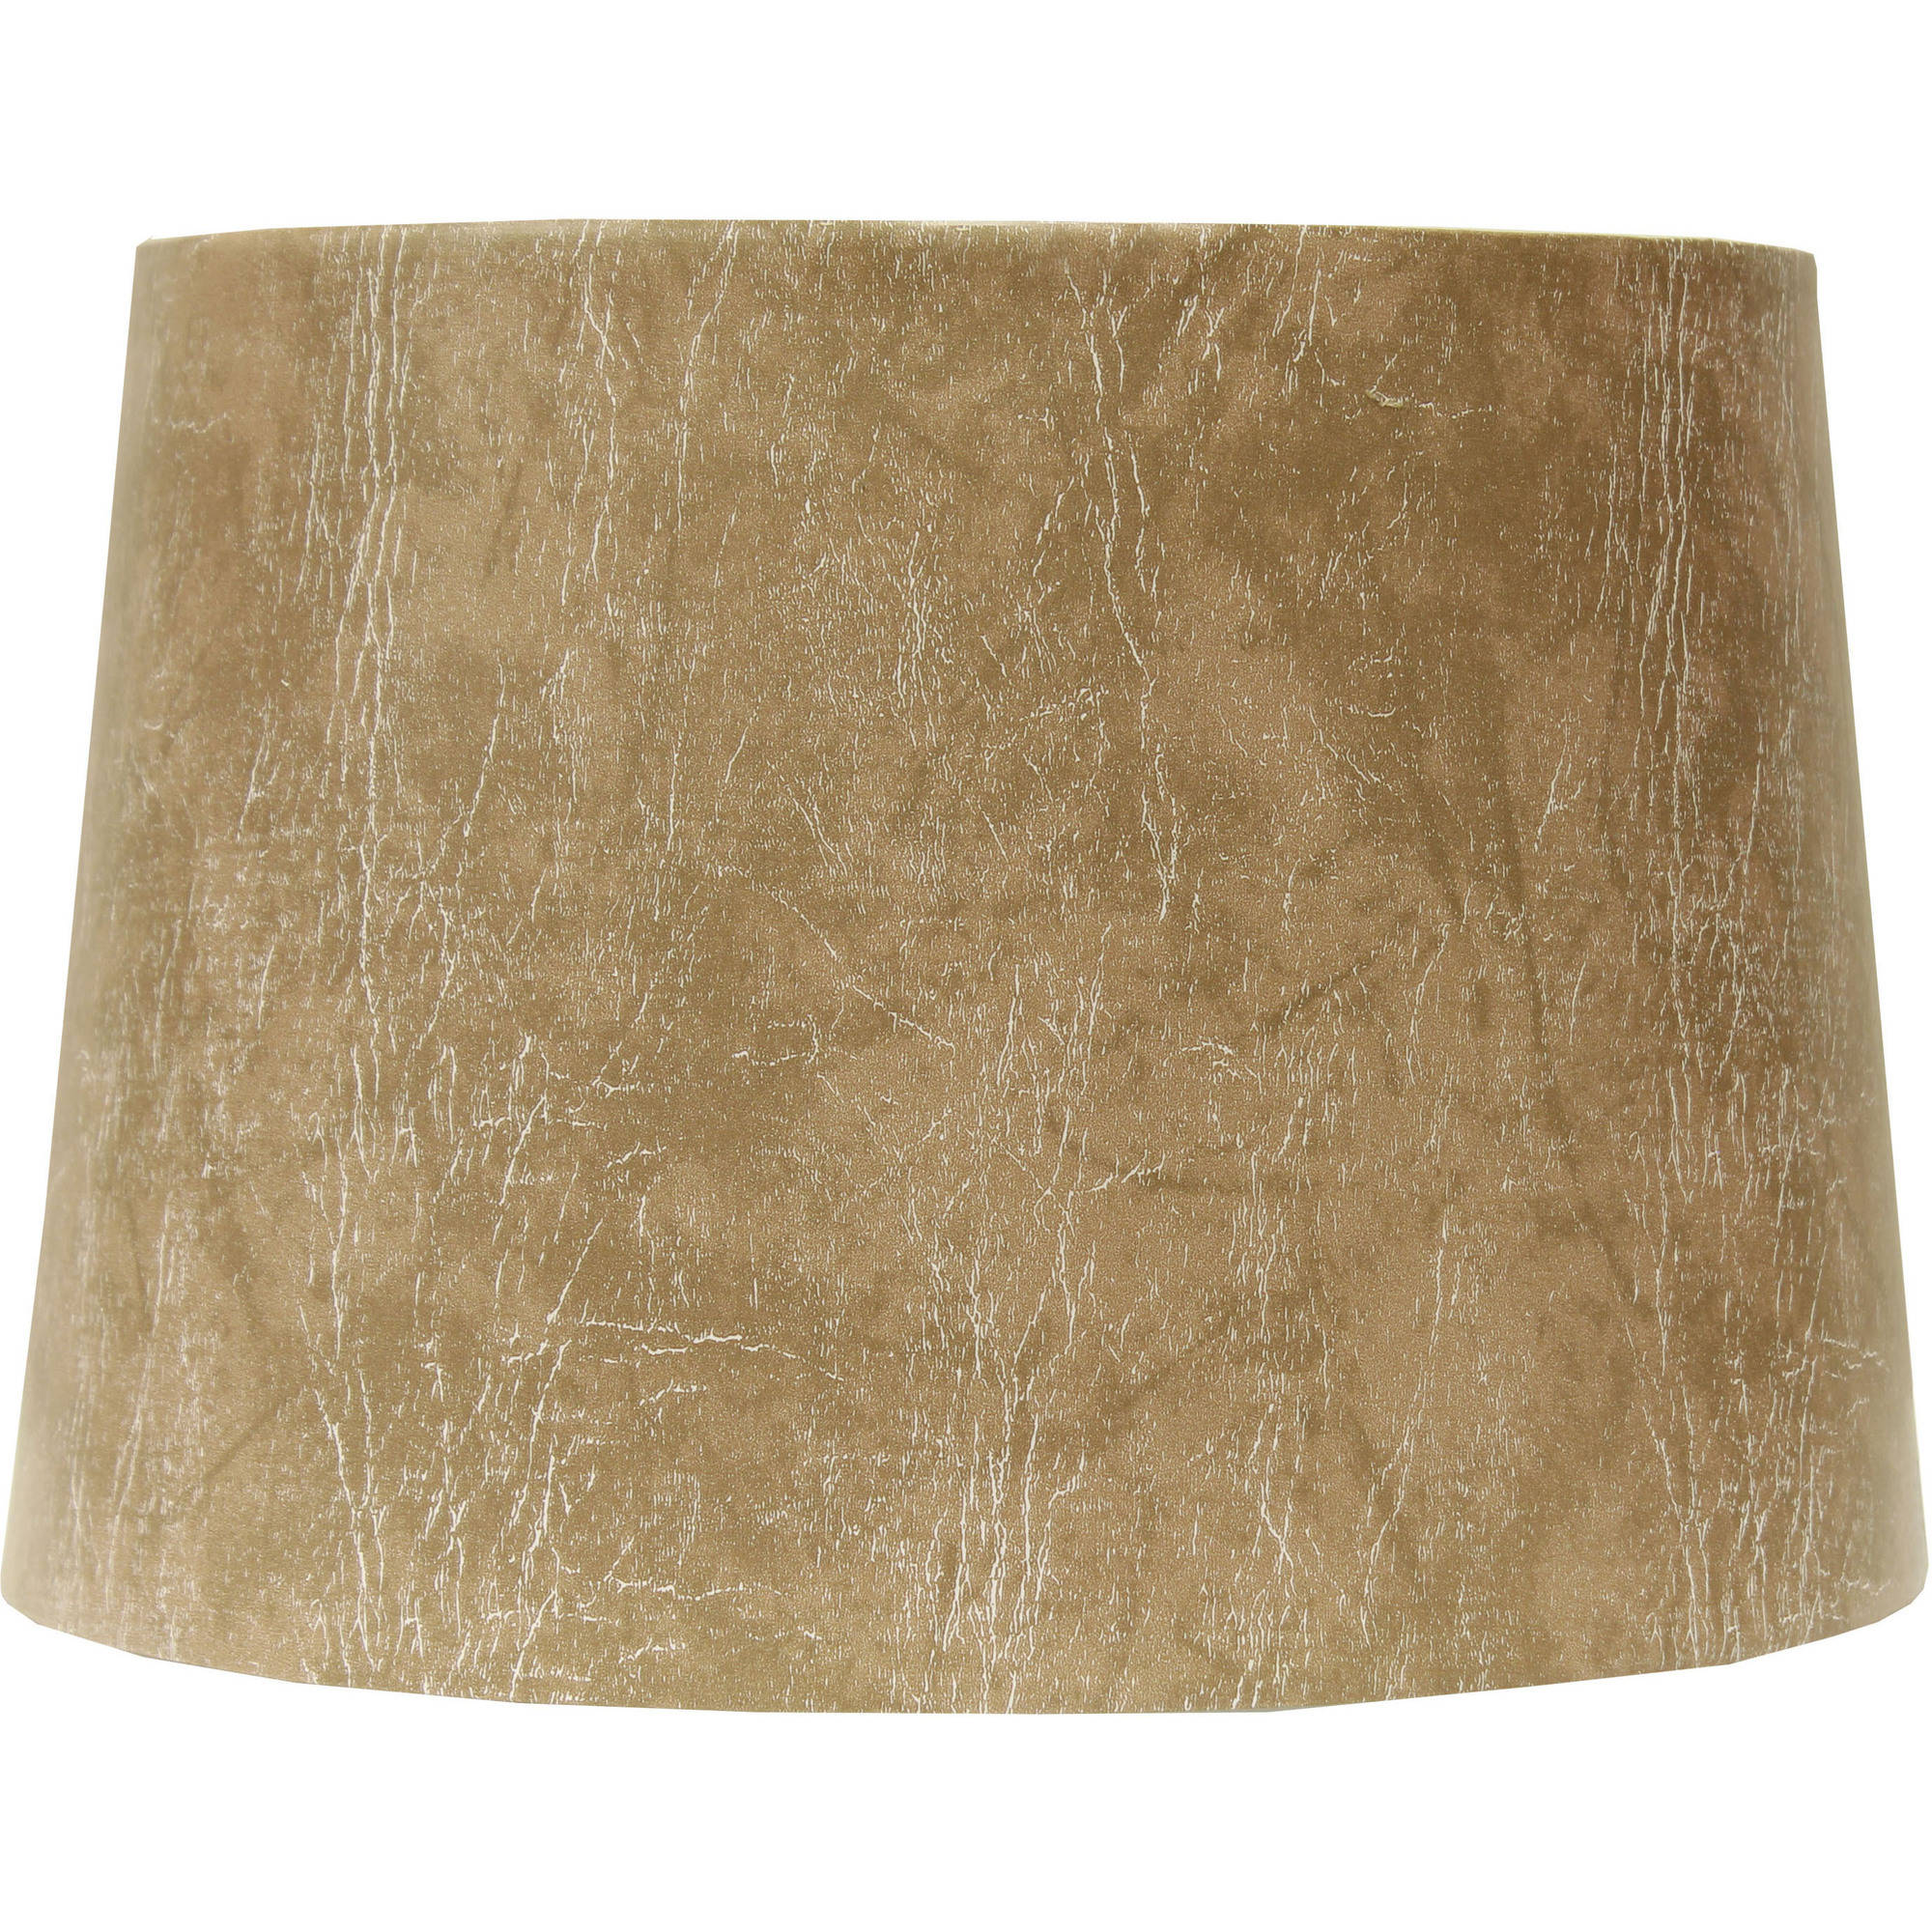 Better Homes and Gardens Faux Leather Drum Shade, Beige